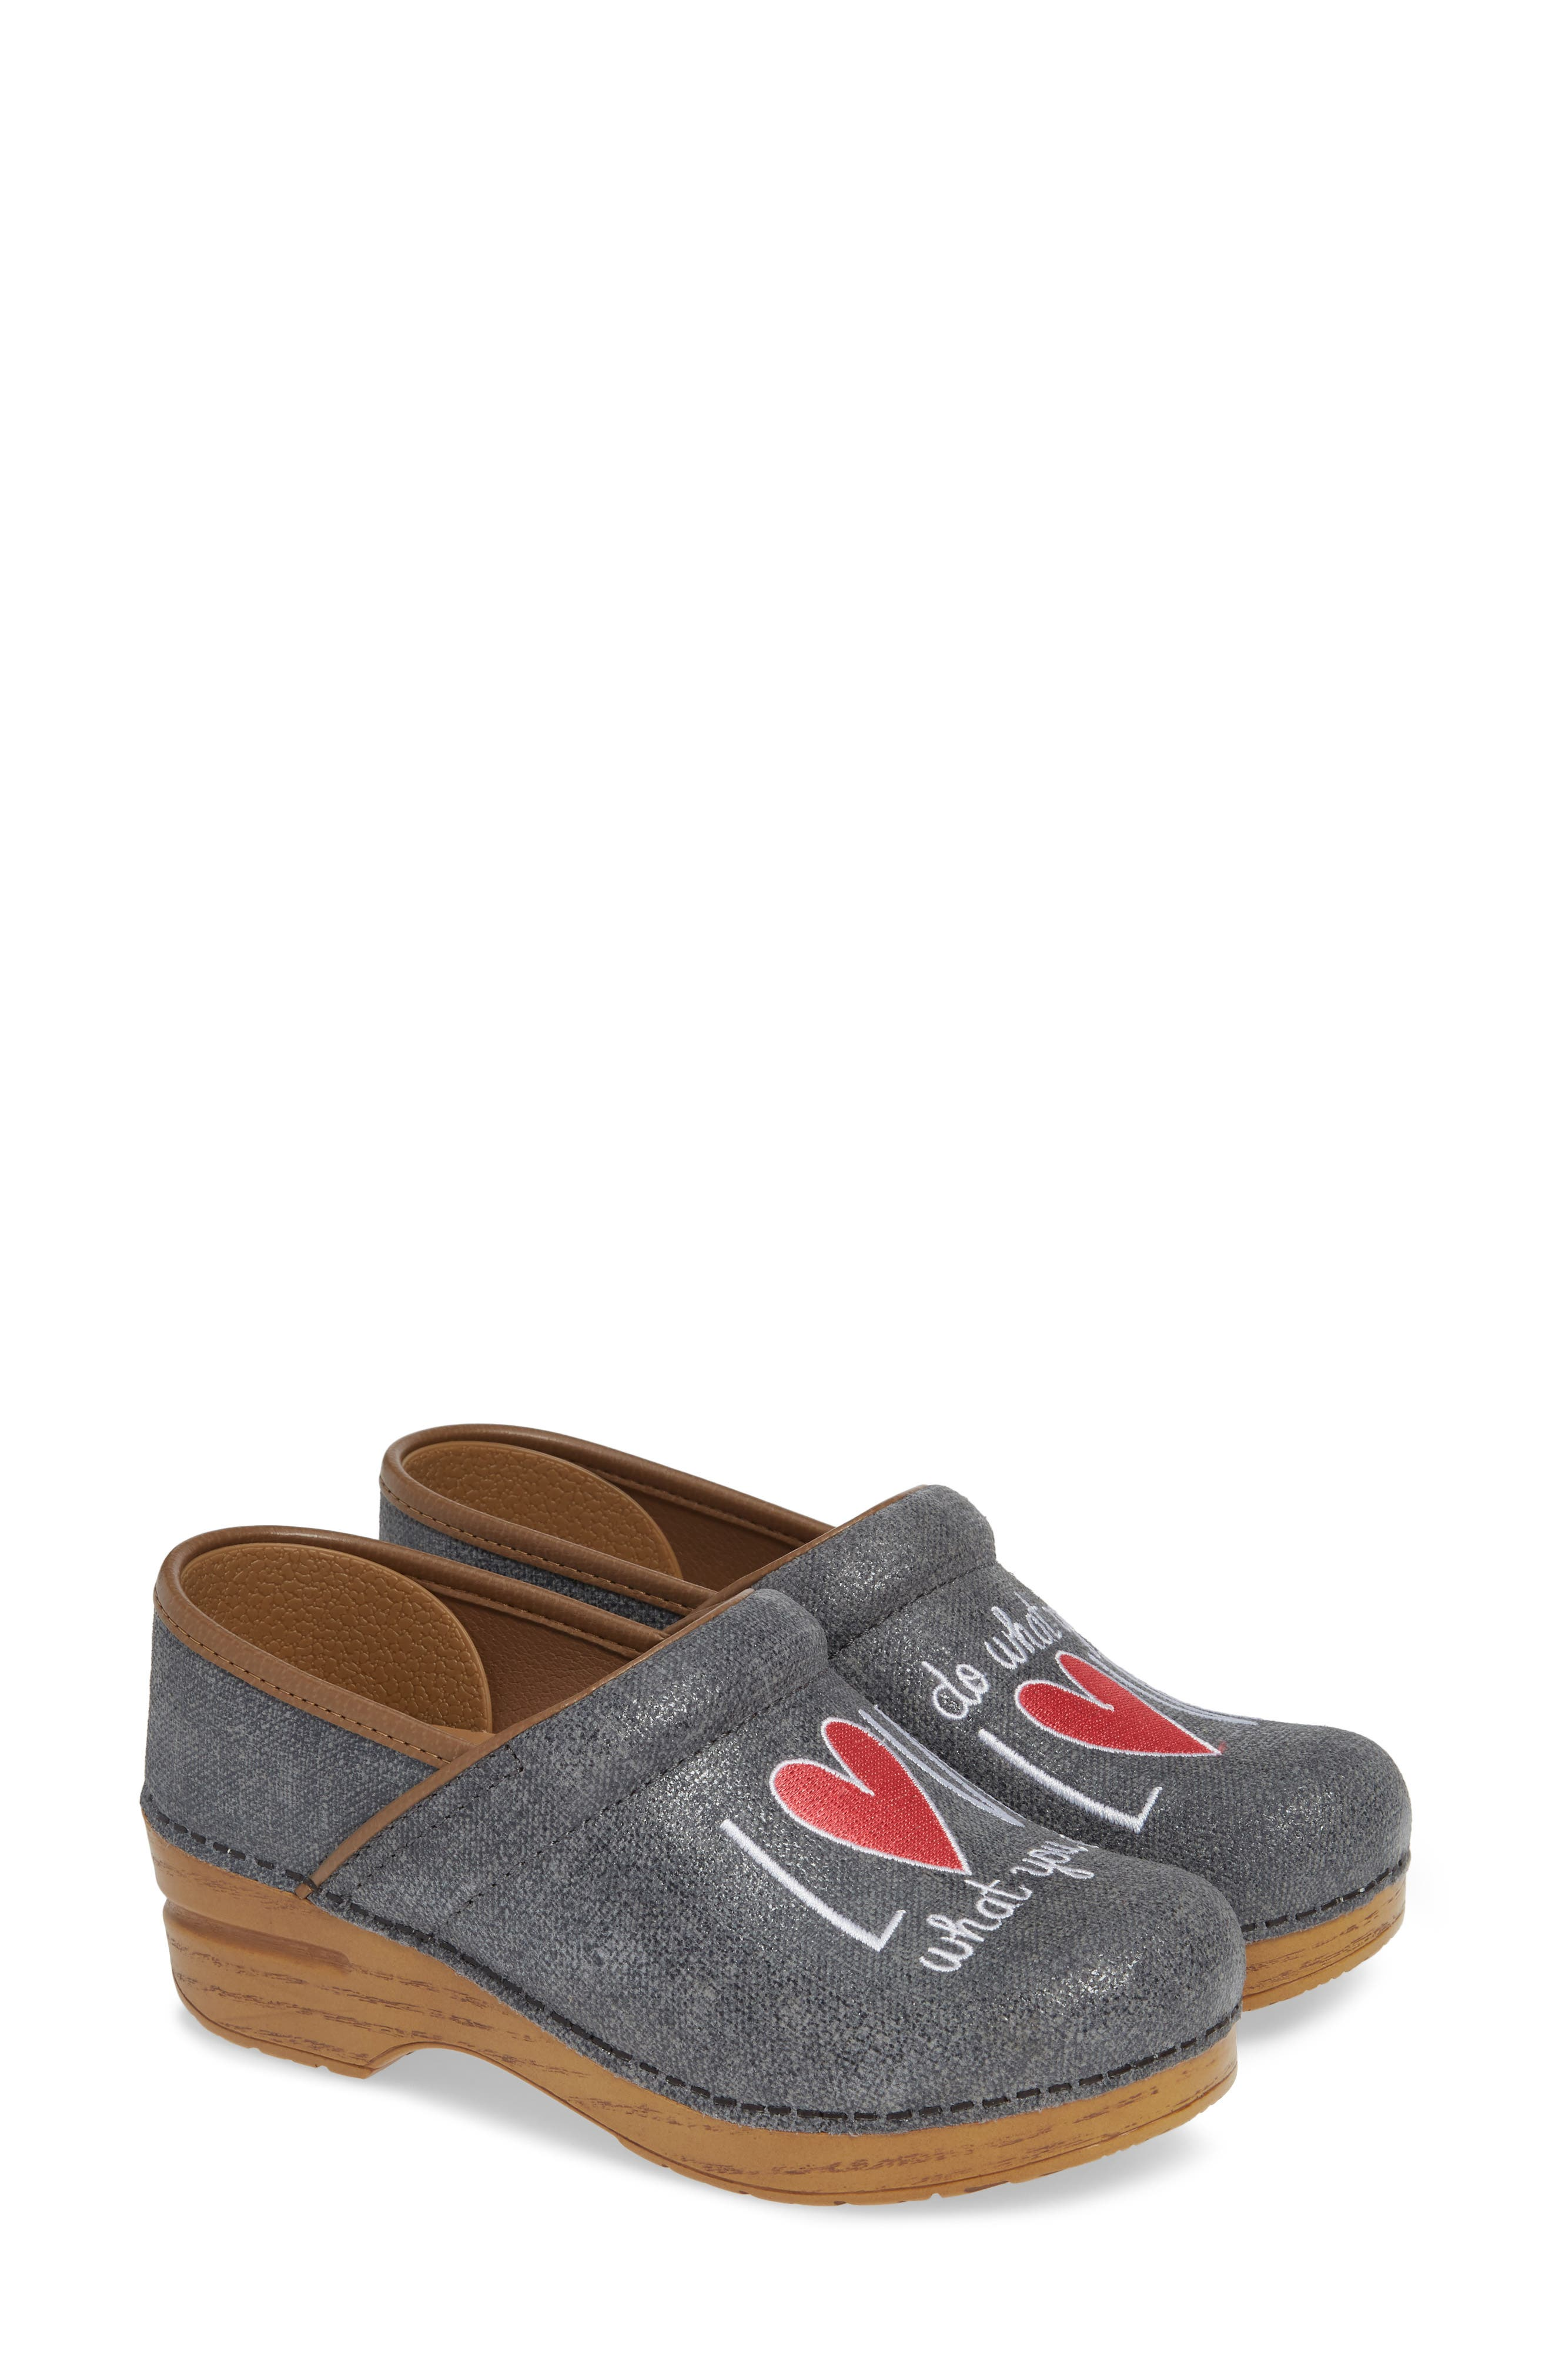 Twin Pro Embroidered Clog,                         Main,                         color, GREY